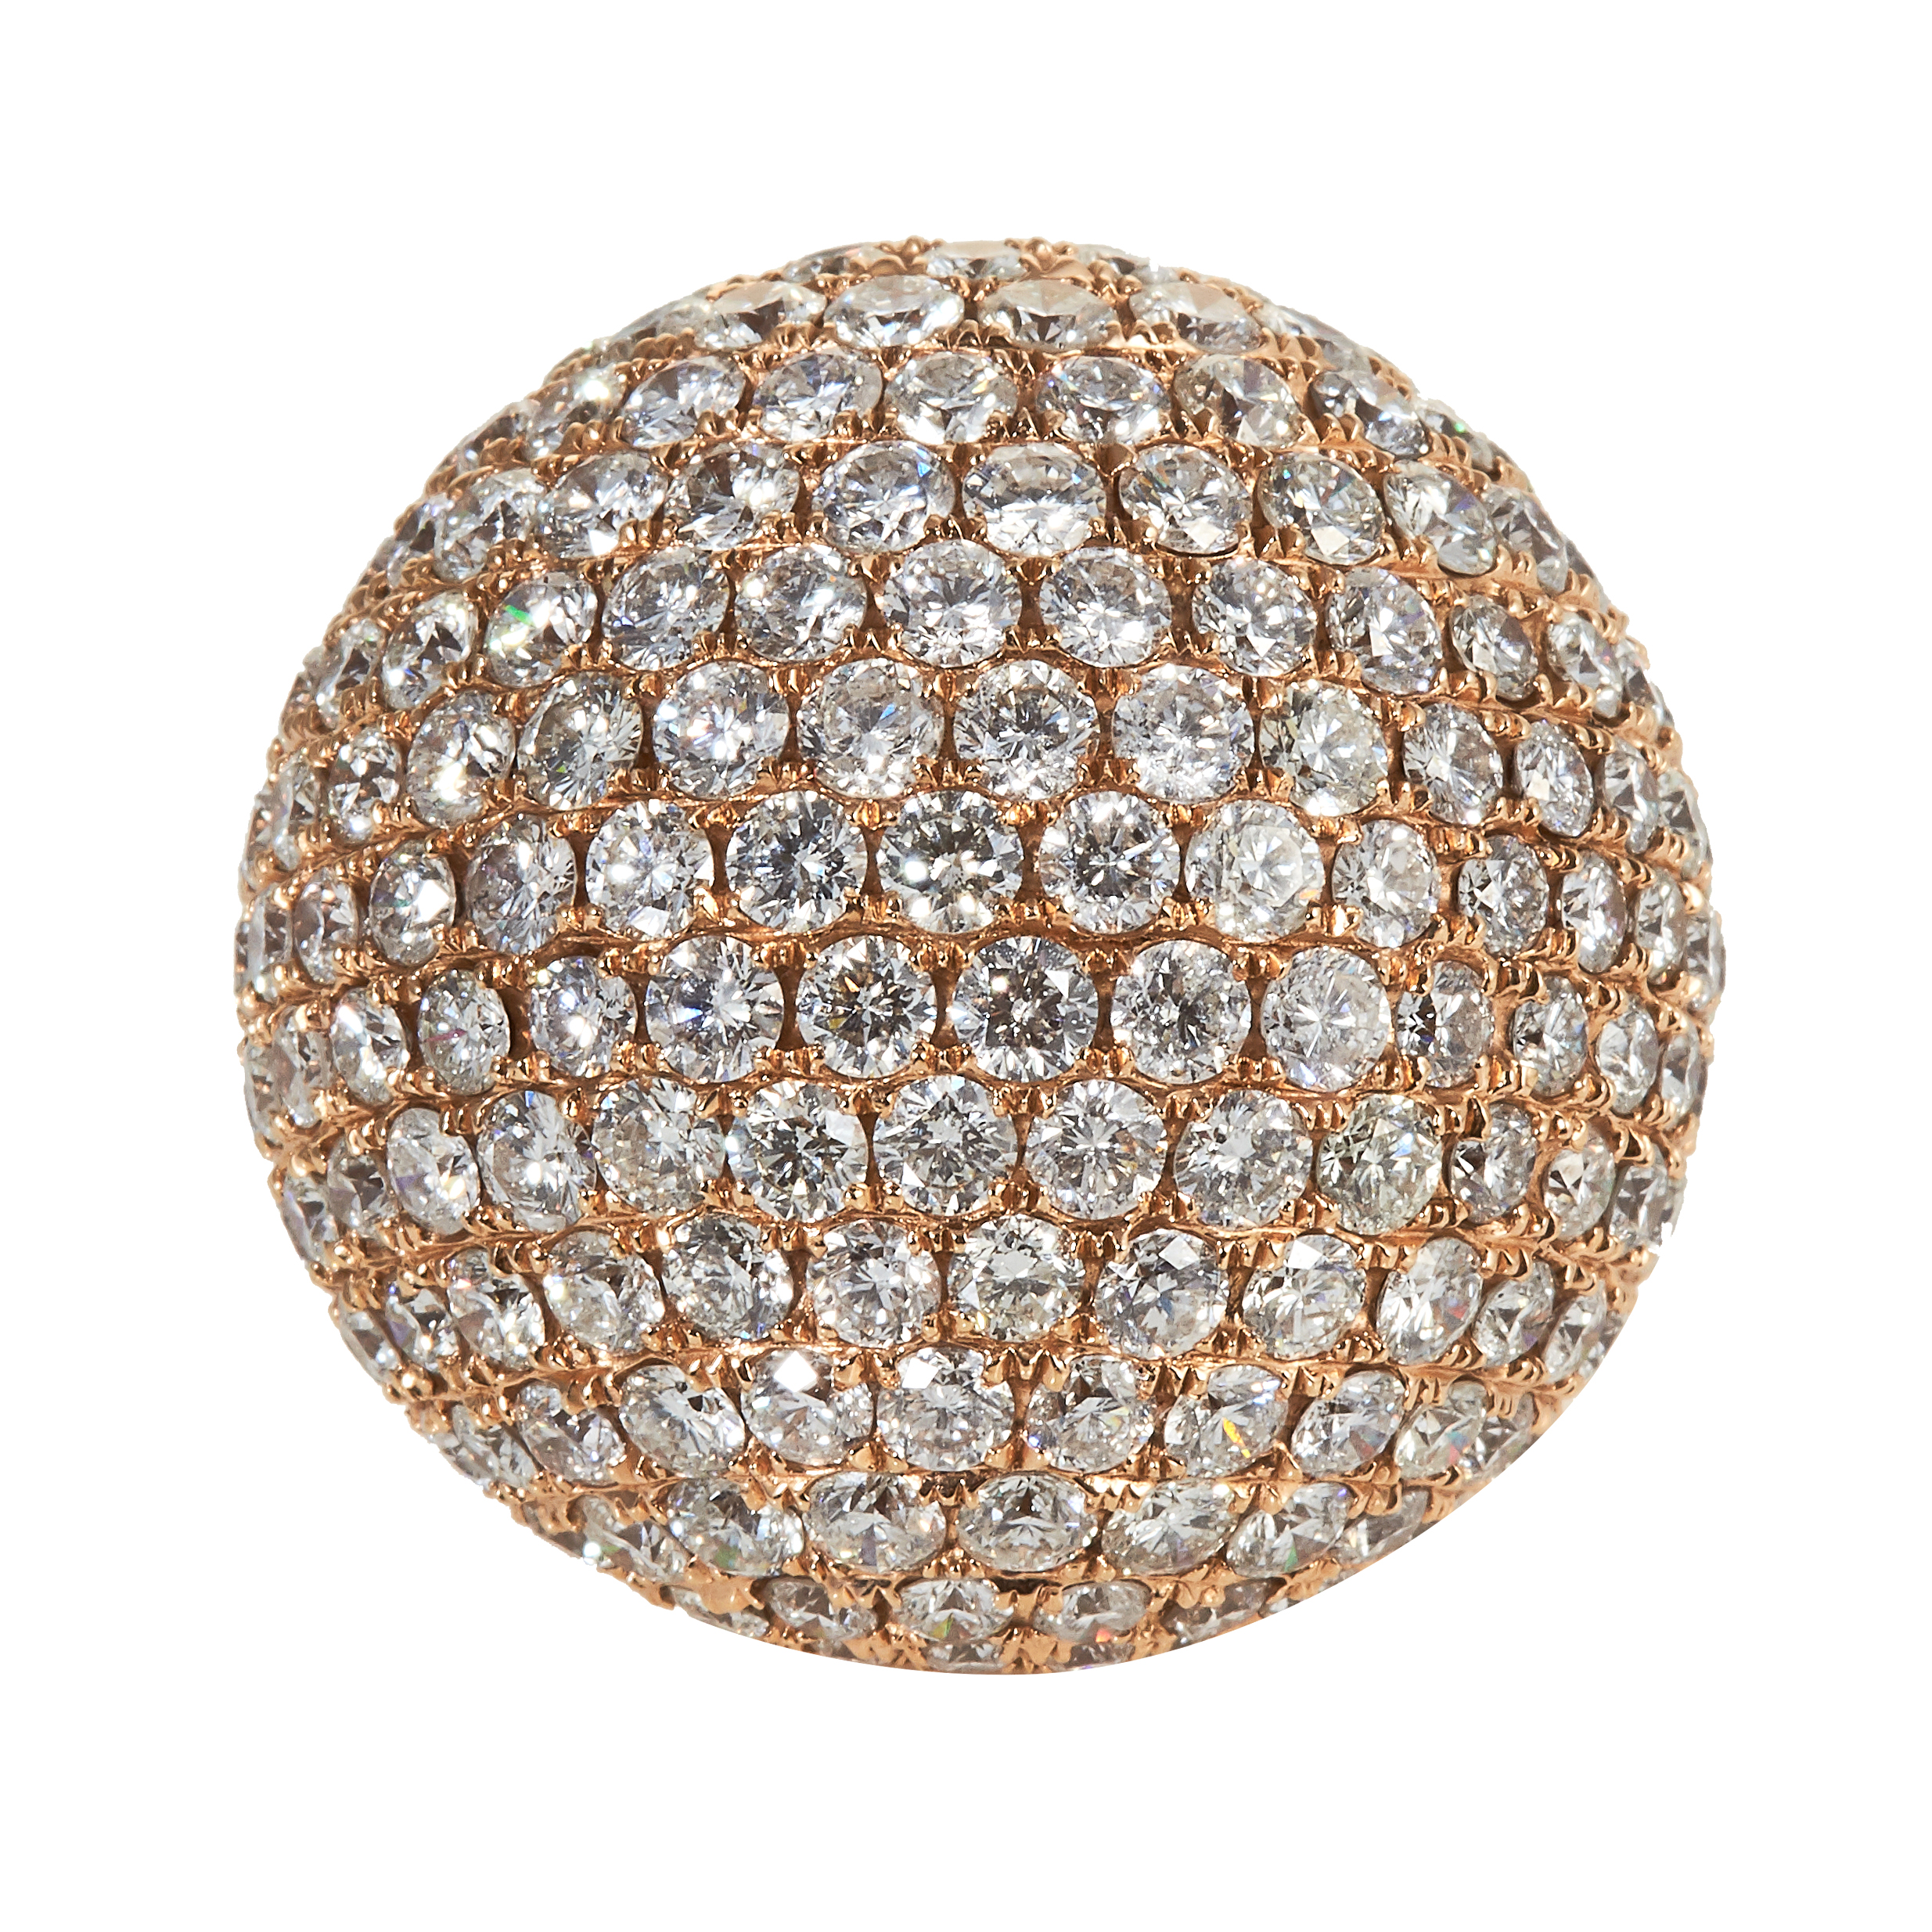 A 13.79 CARAT DIAMOND BOMBE RING in 18ct rose gold, the face jewelled with round cut diamonds